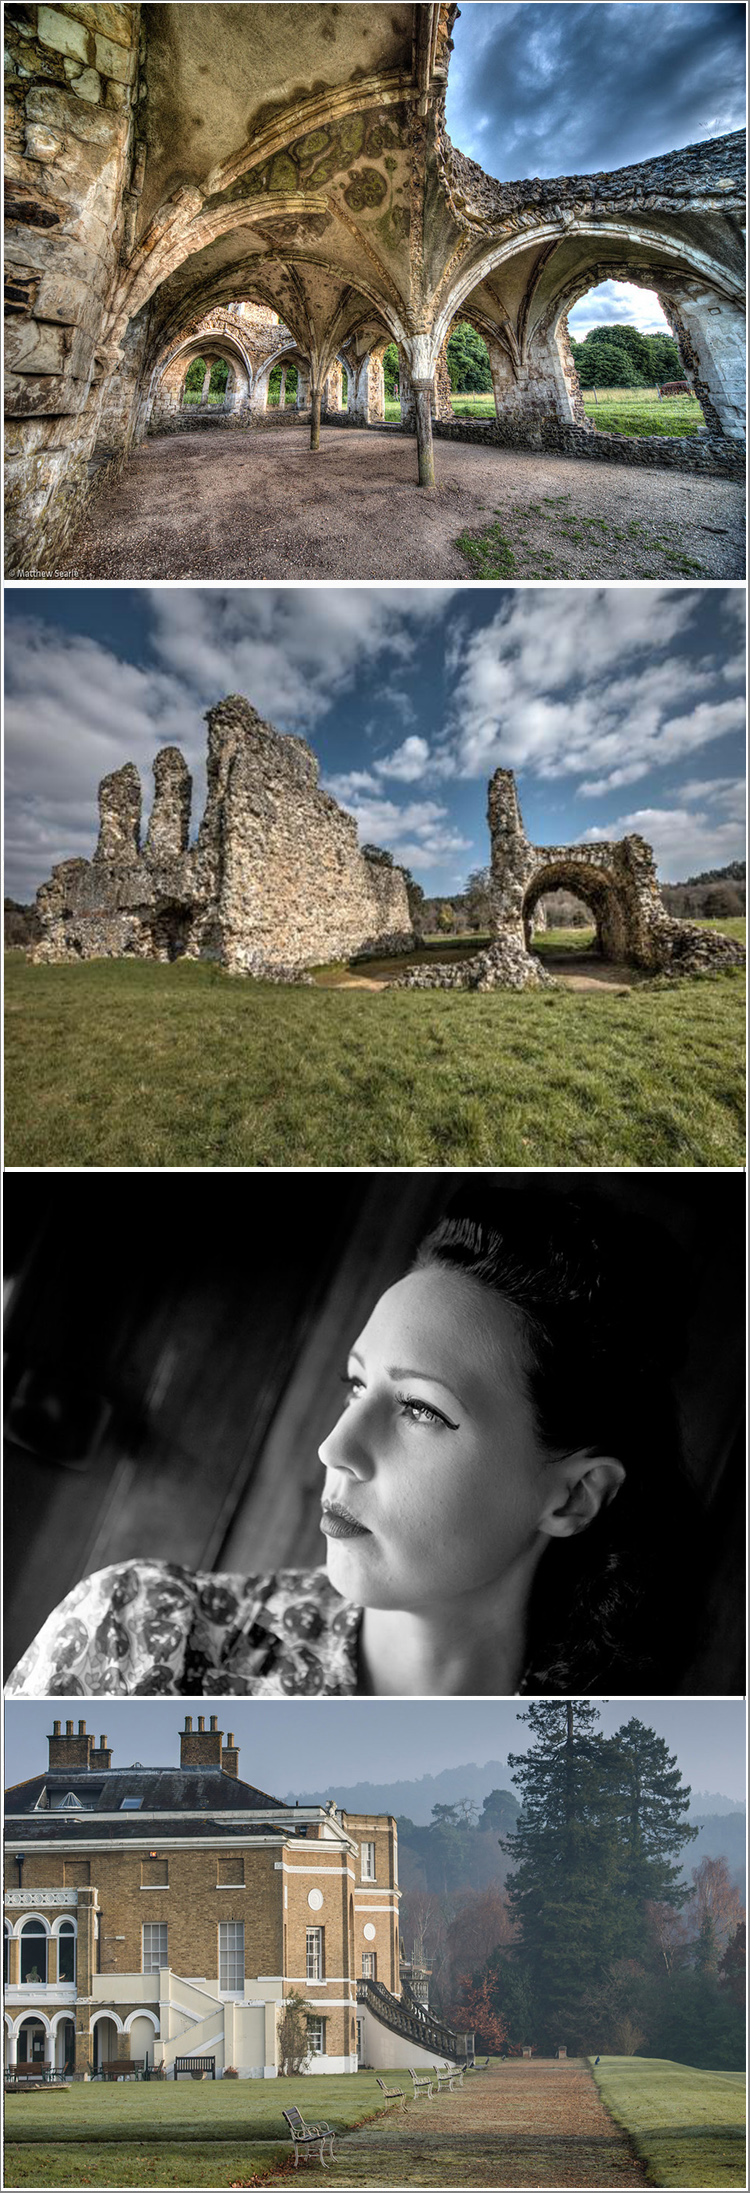 Period Portraits at Waverley Abbey Statley House and the Romantic Ruins of Waverley Abbey, Thursday 22nd August 2019